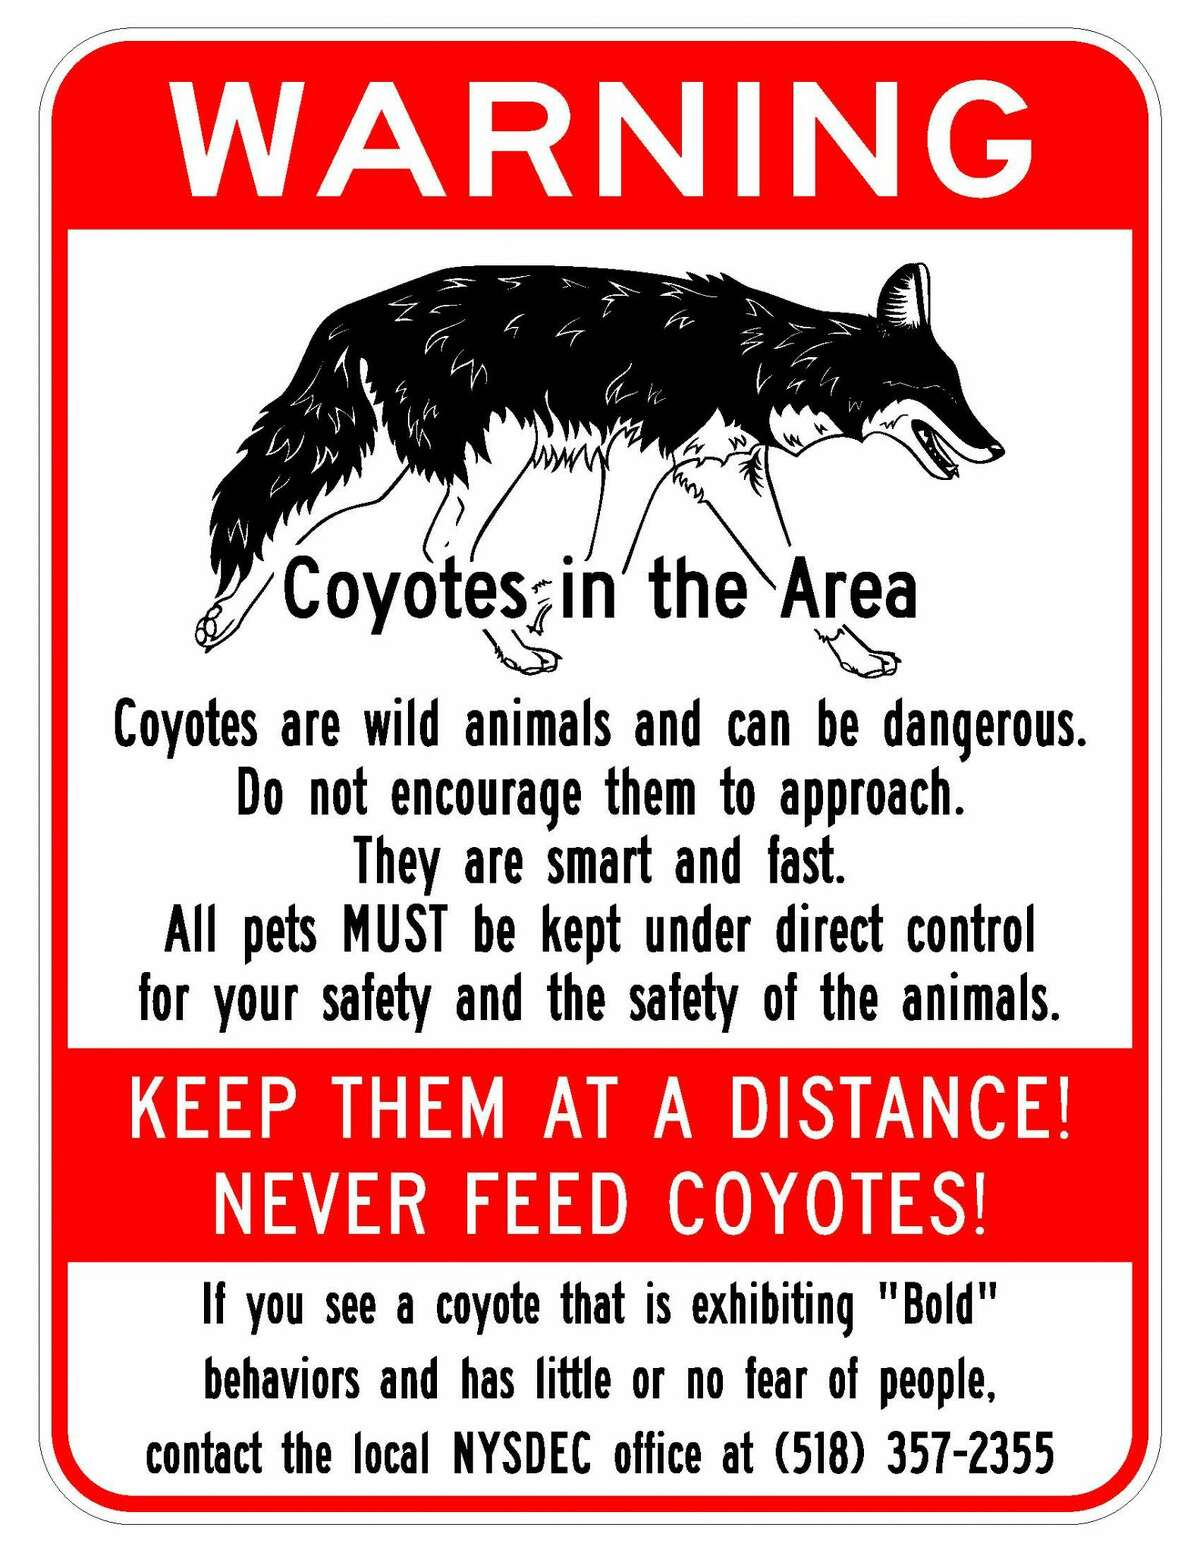 As the weather warms, coyotes set up dens and prepare for pups to be born. The animals are well adapted to suburban and even urban environments, people will likely encounter a few in their travels. Here's what the DEC says you need to do to avoid conflict with coyotes: